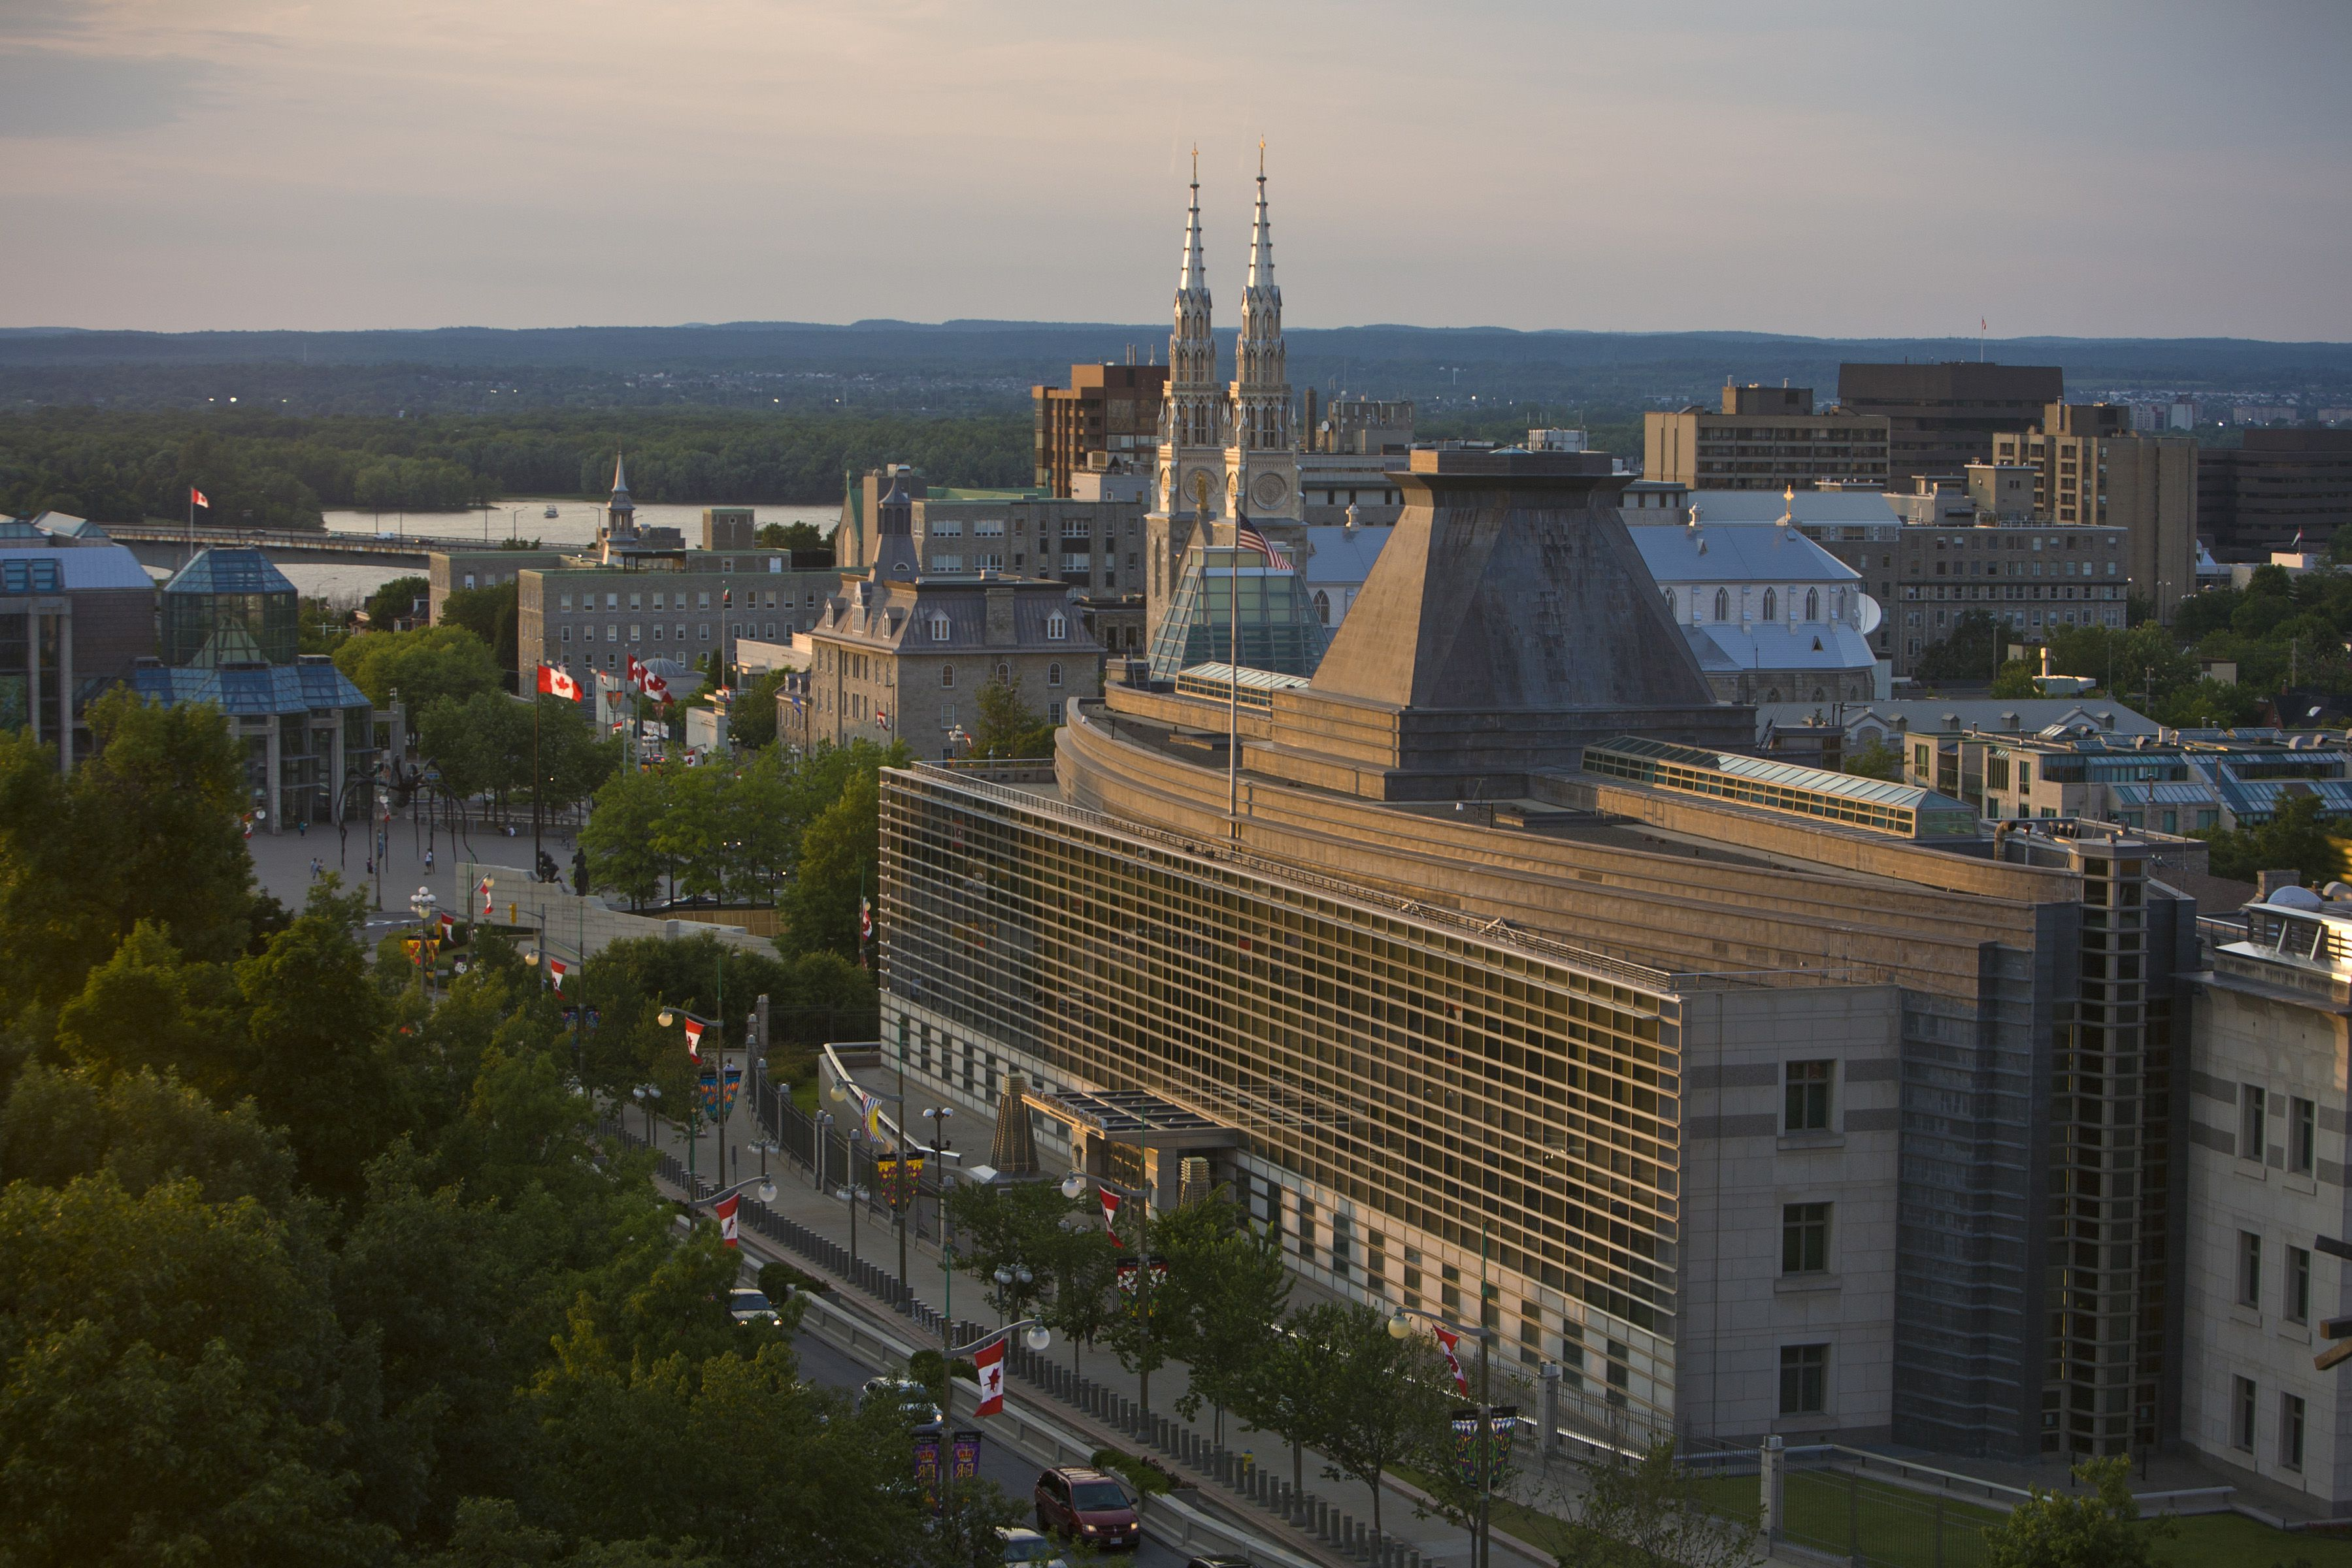 The United States Embassy building is viewed from the Fairmont Chateau Laurier Hotel on June 30, 2012 in Ottawa, Canada